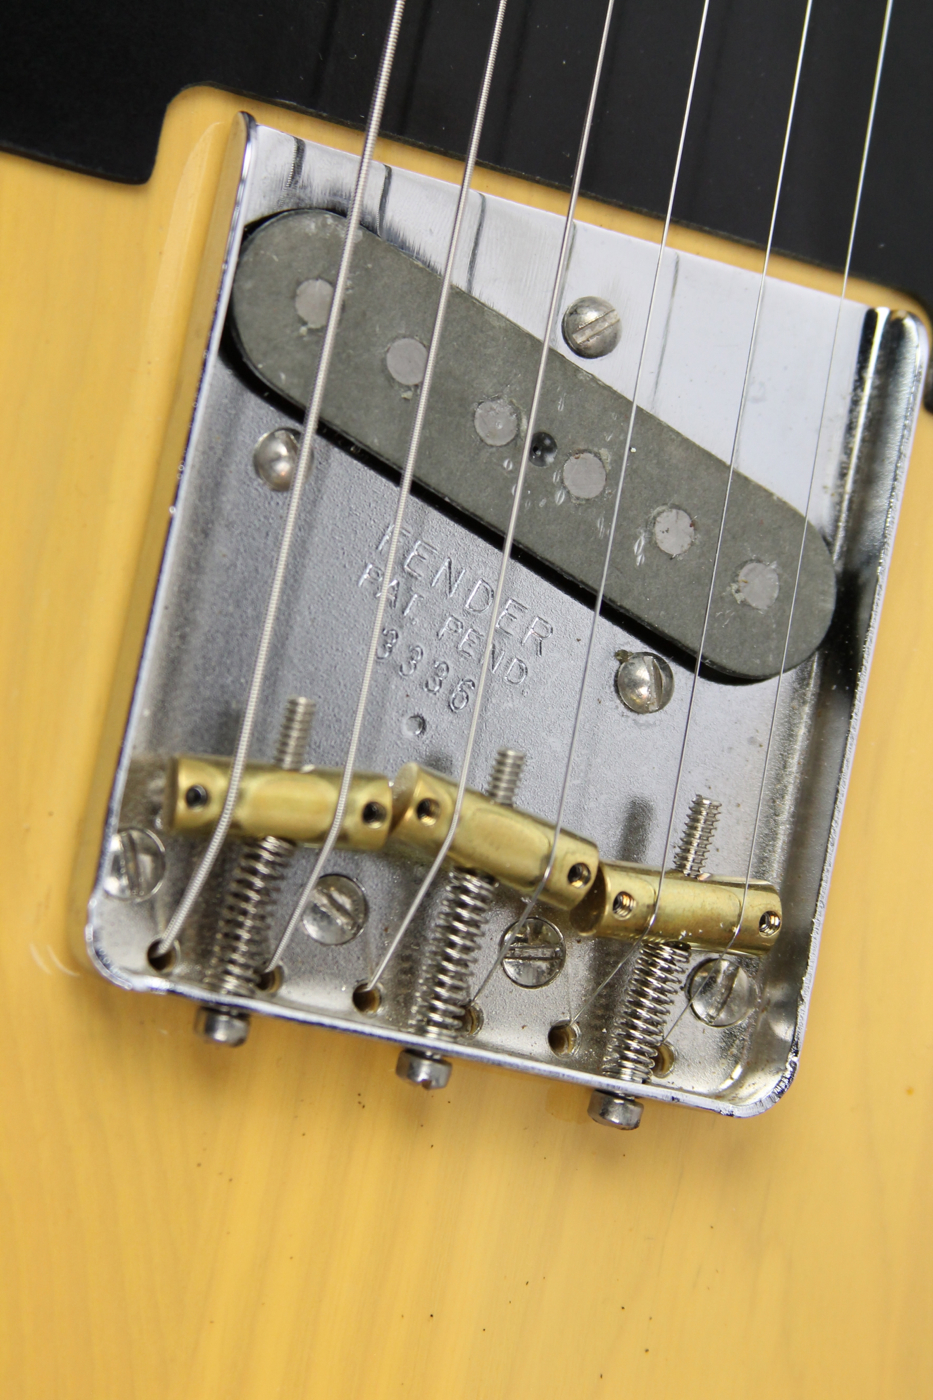 Dating mexican fender guitars by serial number 7